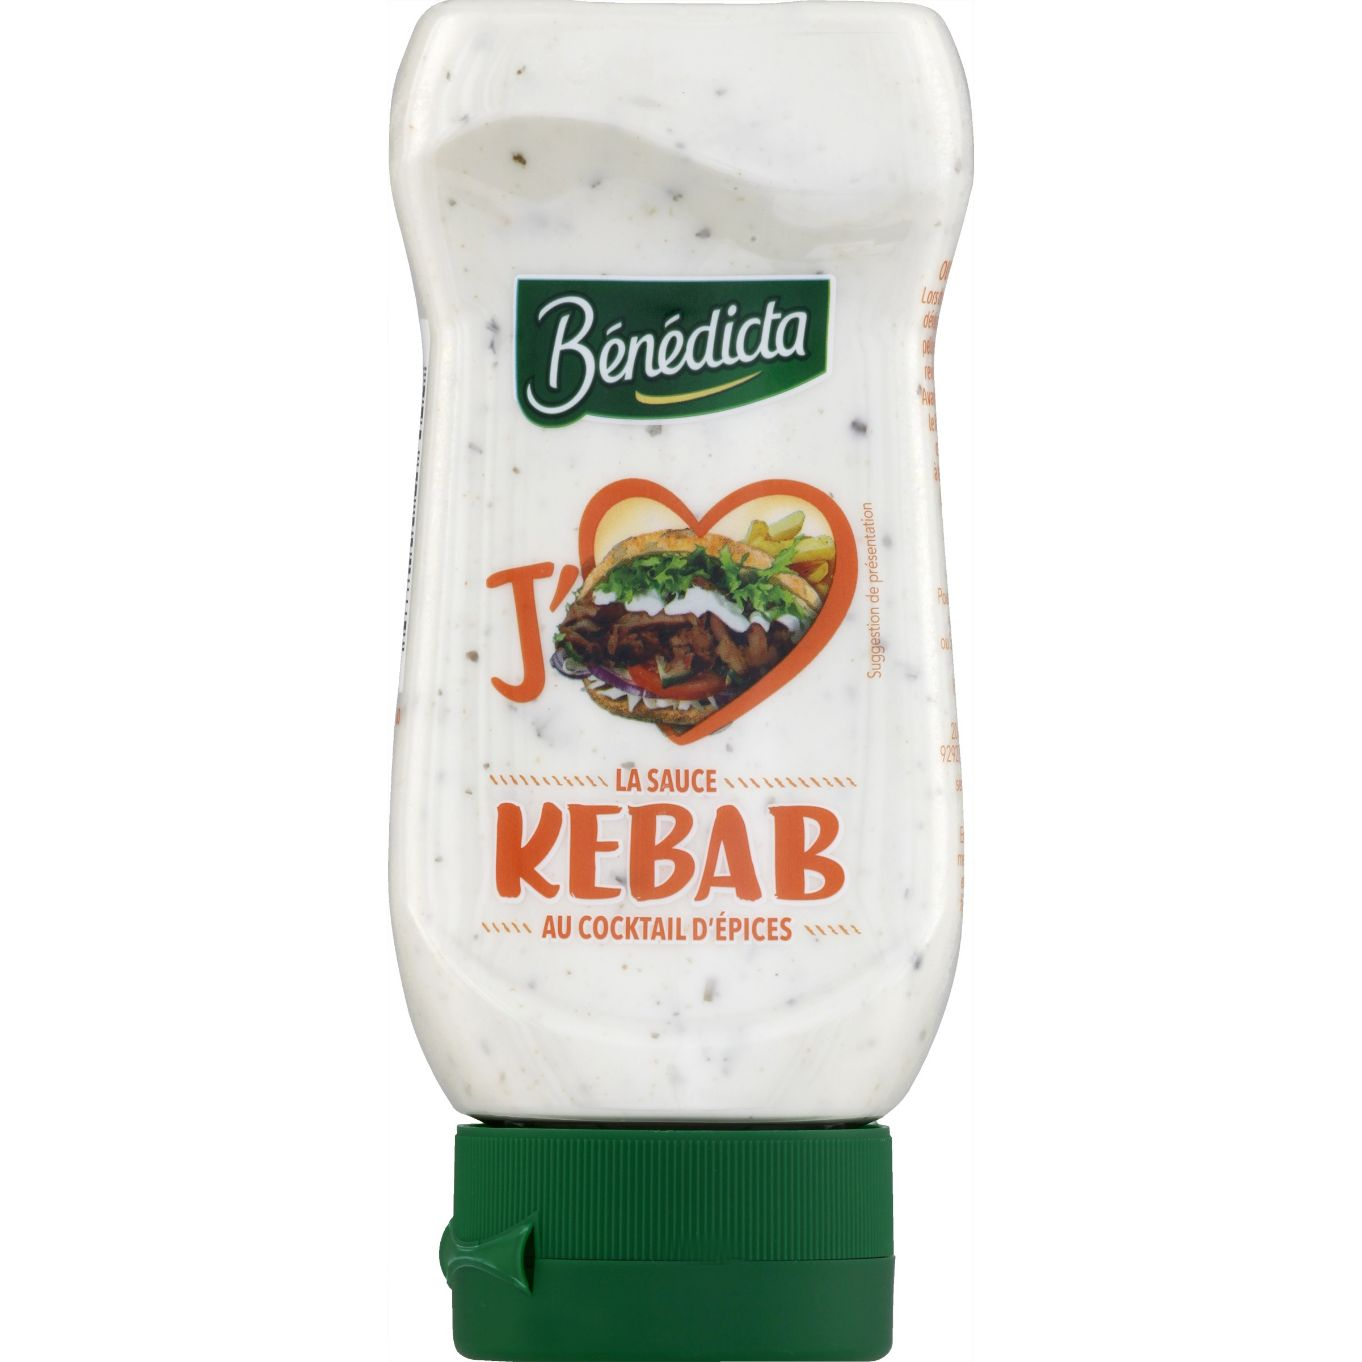 Bénédicta Sauce Royal kebab flacon 400ml Flacon Souple image